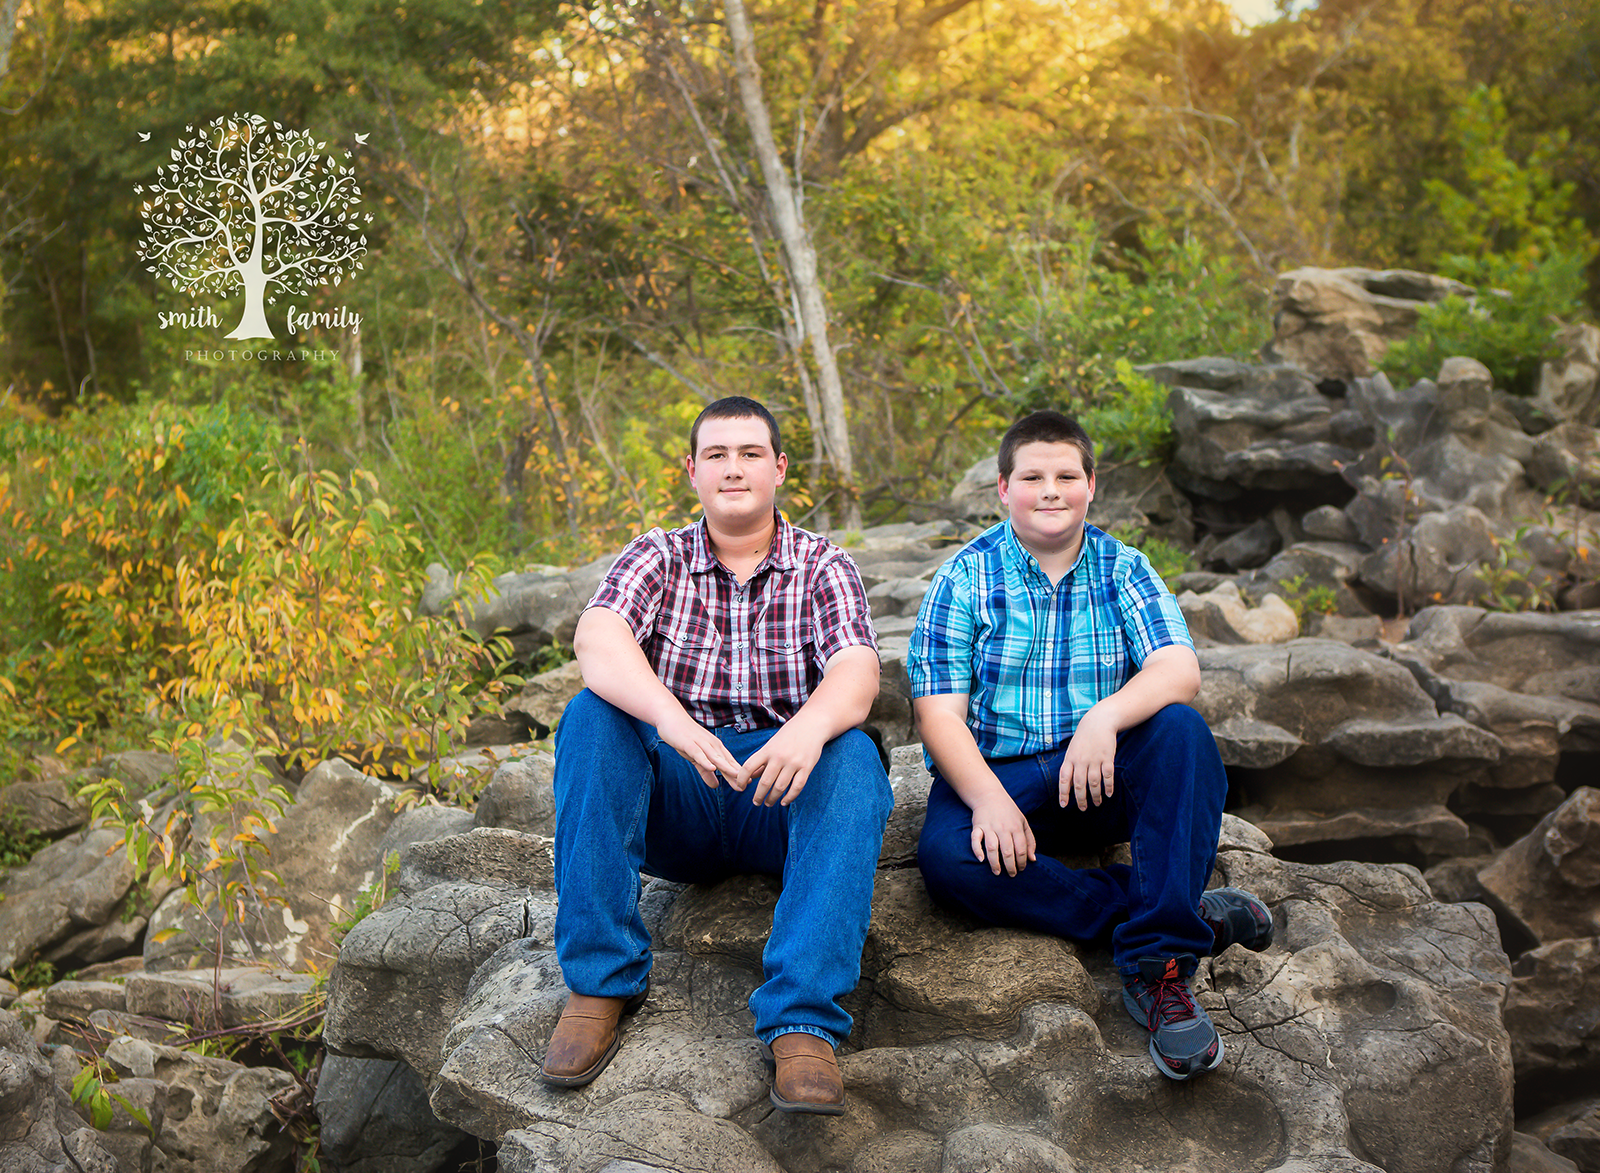 """We highly recommend Smith Family Photography. Anna is such a talented photographer who really cares about each of her clients and their needs. This was our first session. I expected it to be amazing and the results were beyond that. During the session, Anna really took the time to capture the bond that my boys share. I cannot say enough how pleased my husband and I are! Thank you, Smith Family Photography, for capturing such wonderful memories for our family to cherish for many years."" - Jennifer W."